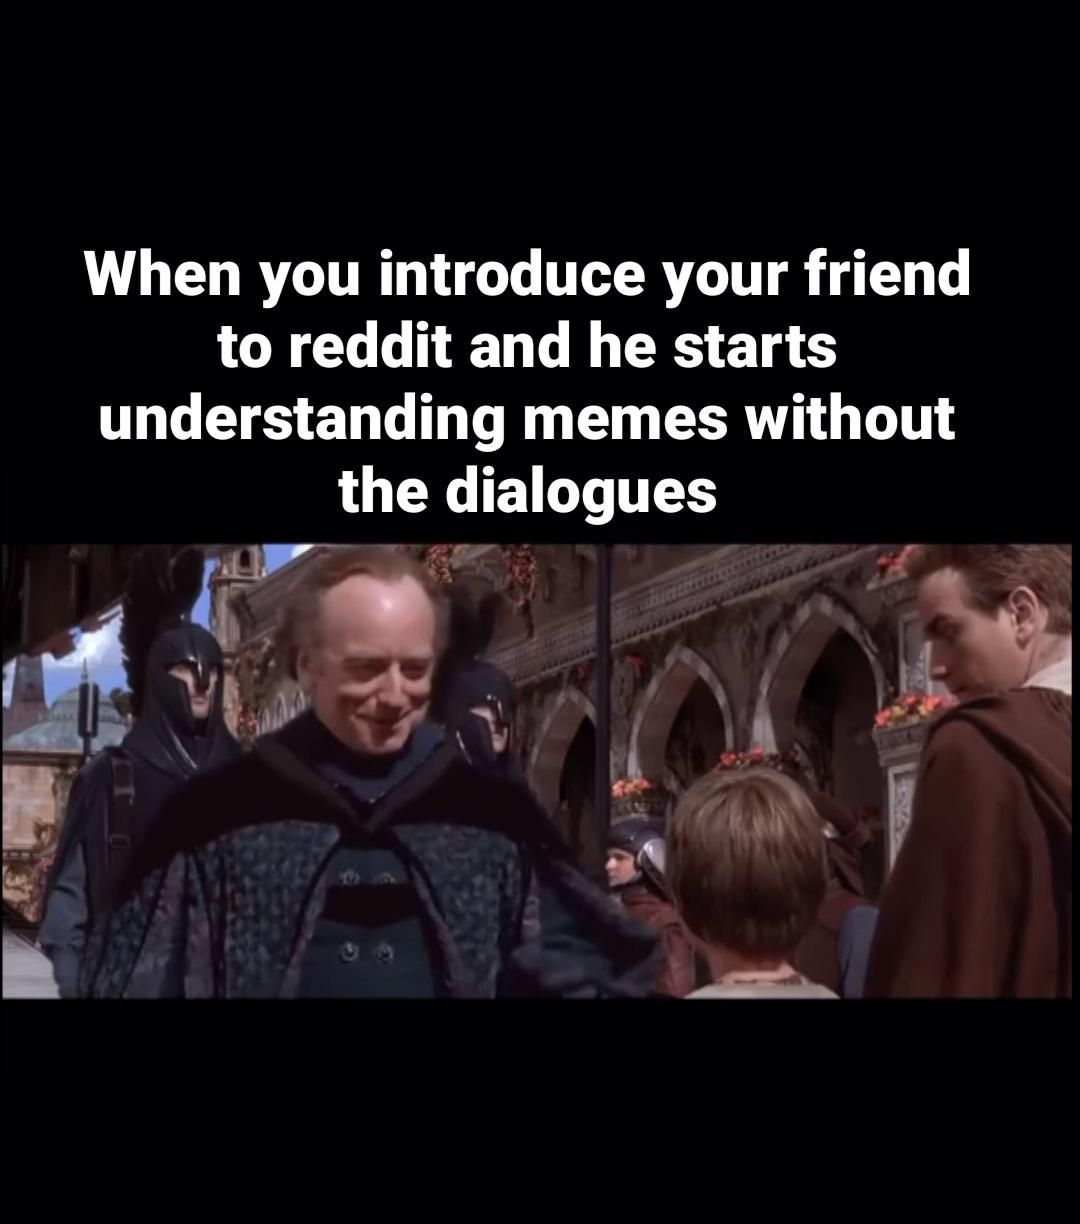 First Meem Thorgift Com If You Like It Please Buy Somethings From Thorgift Com Memes How To Introduce Yourself Understanding